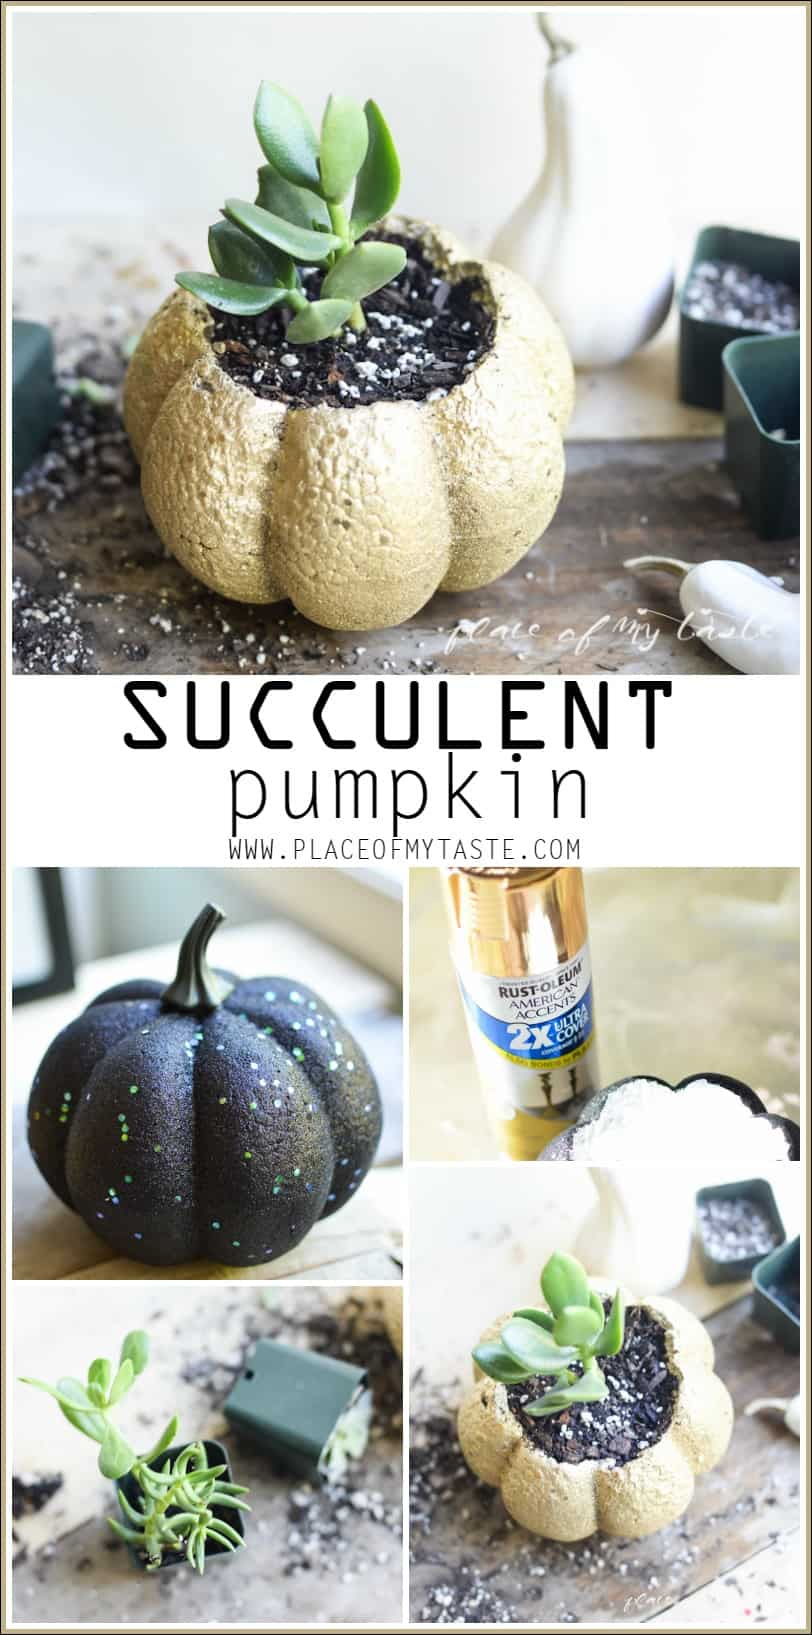 SUCCULENT PUMPKIN- Placeofmytaste.com Create this cute succulent pumpkin to add festive fall decor to your home